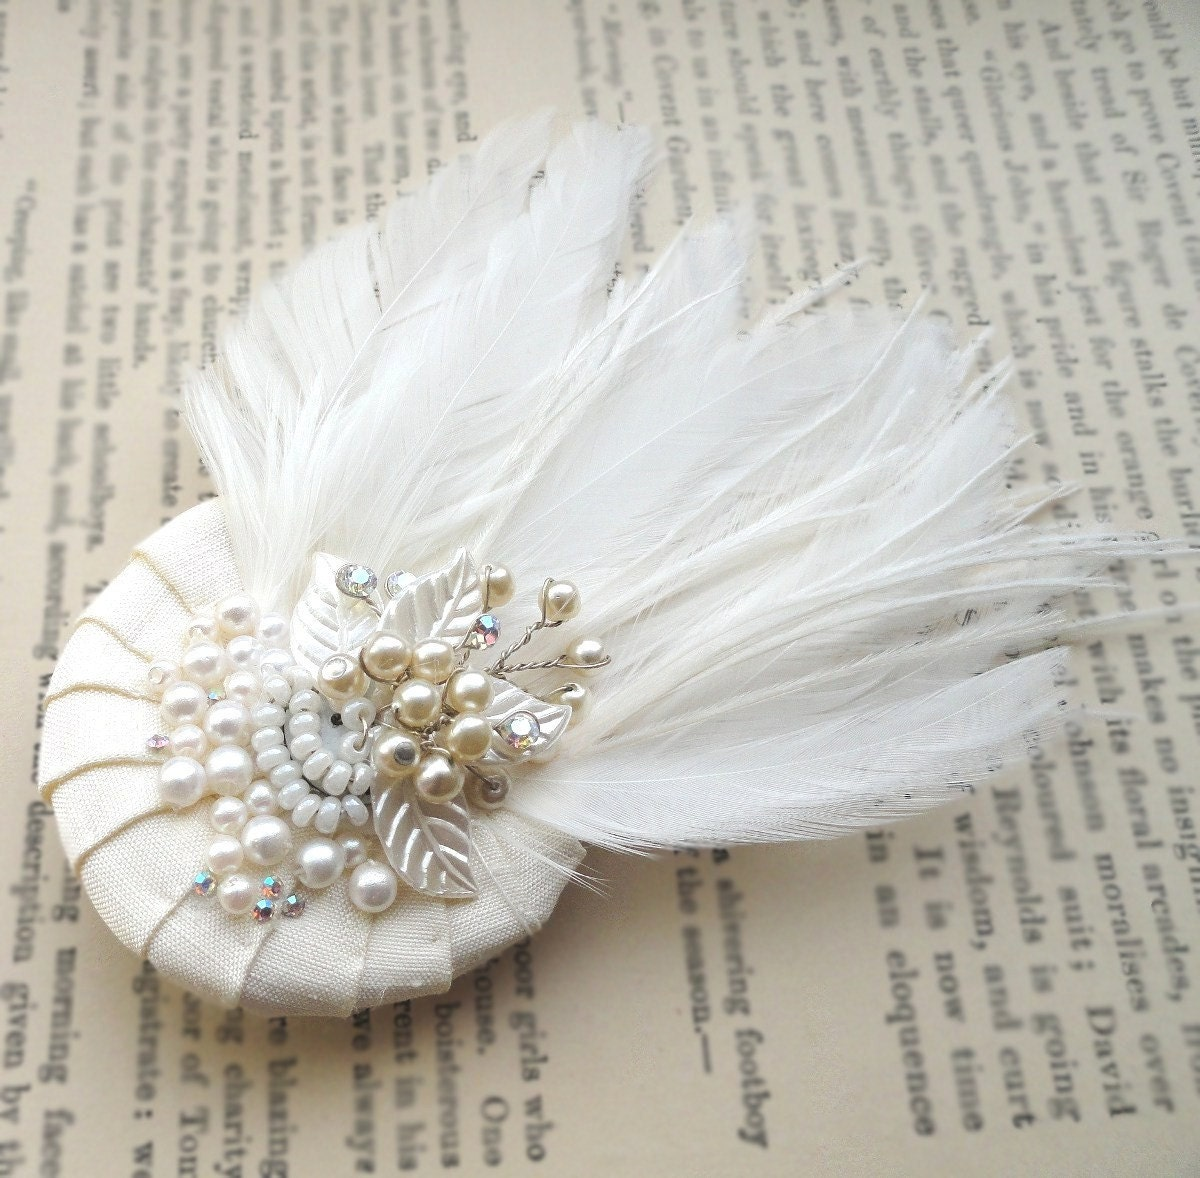 Pleated Sweet, bridal feather fascinator headpiece, needle sculpted silk, vintage beading